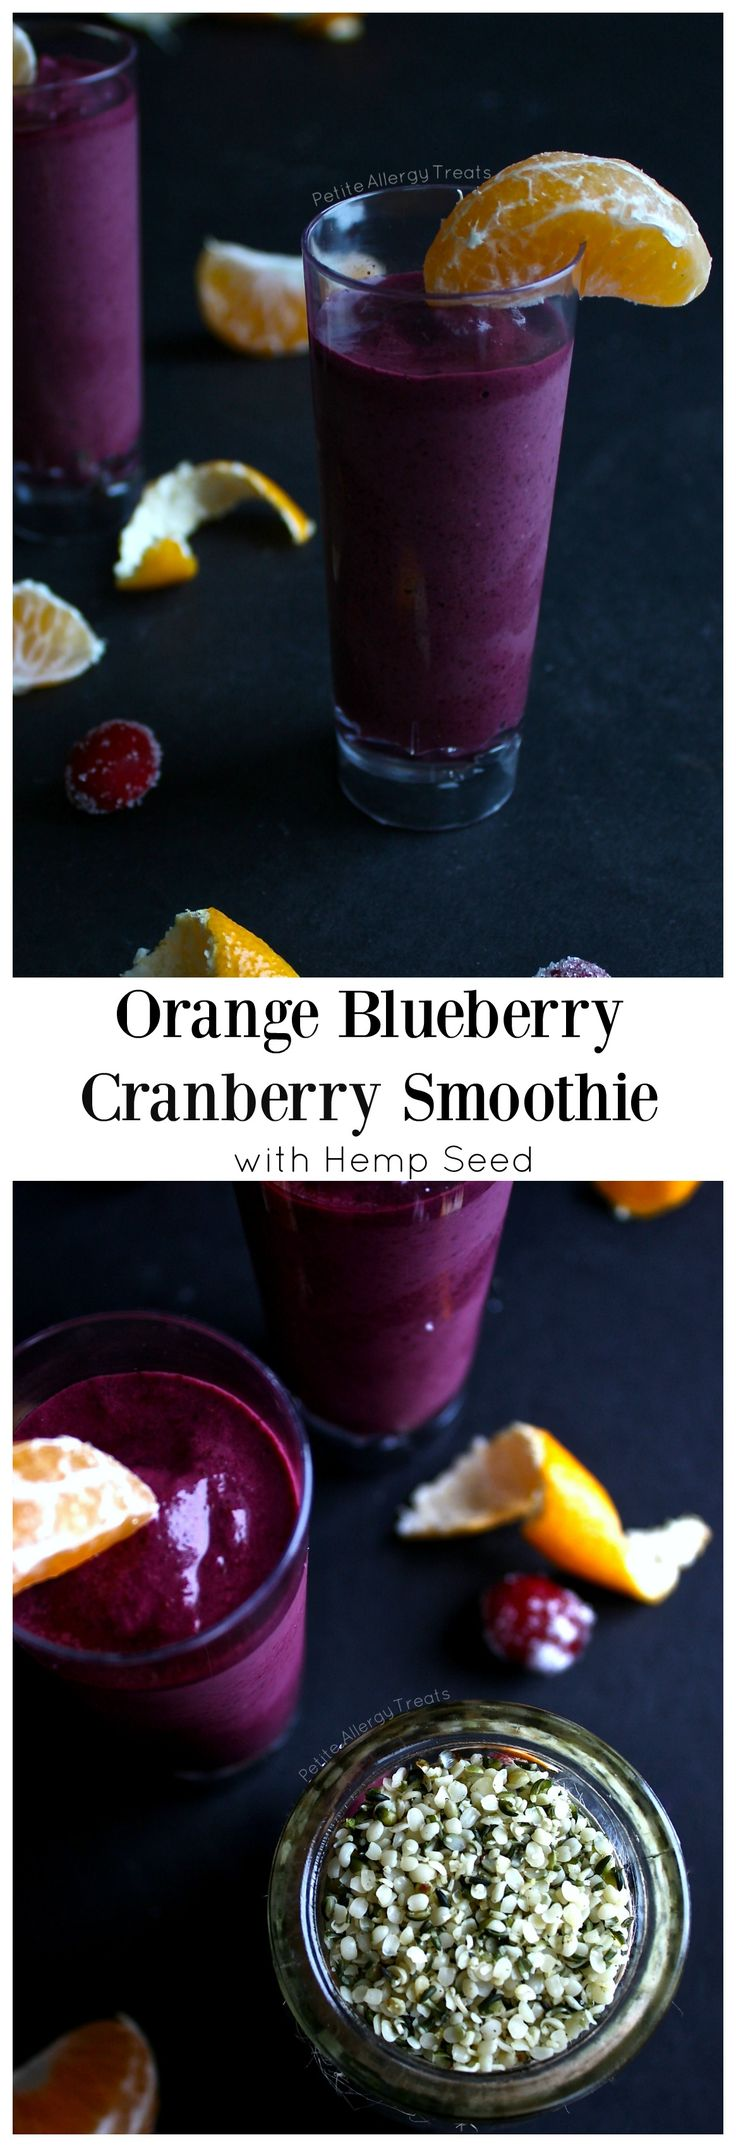 Blueberry Orange Cranberry Hemp Smoothie - Easy breakfast smoothie full of rich antioxidants and protein.